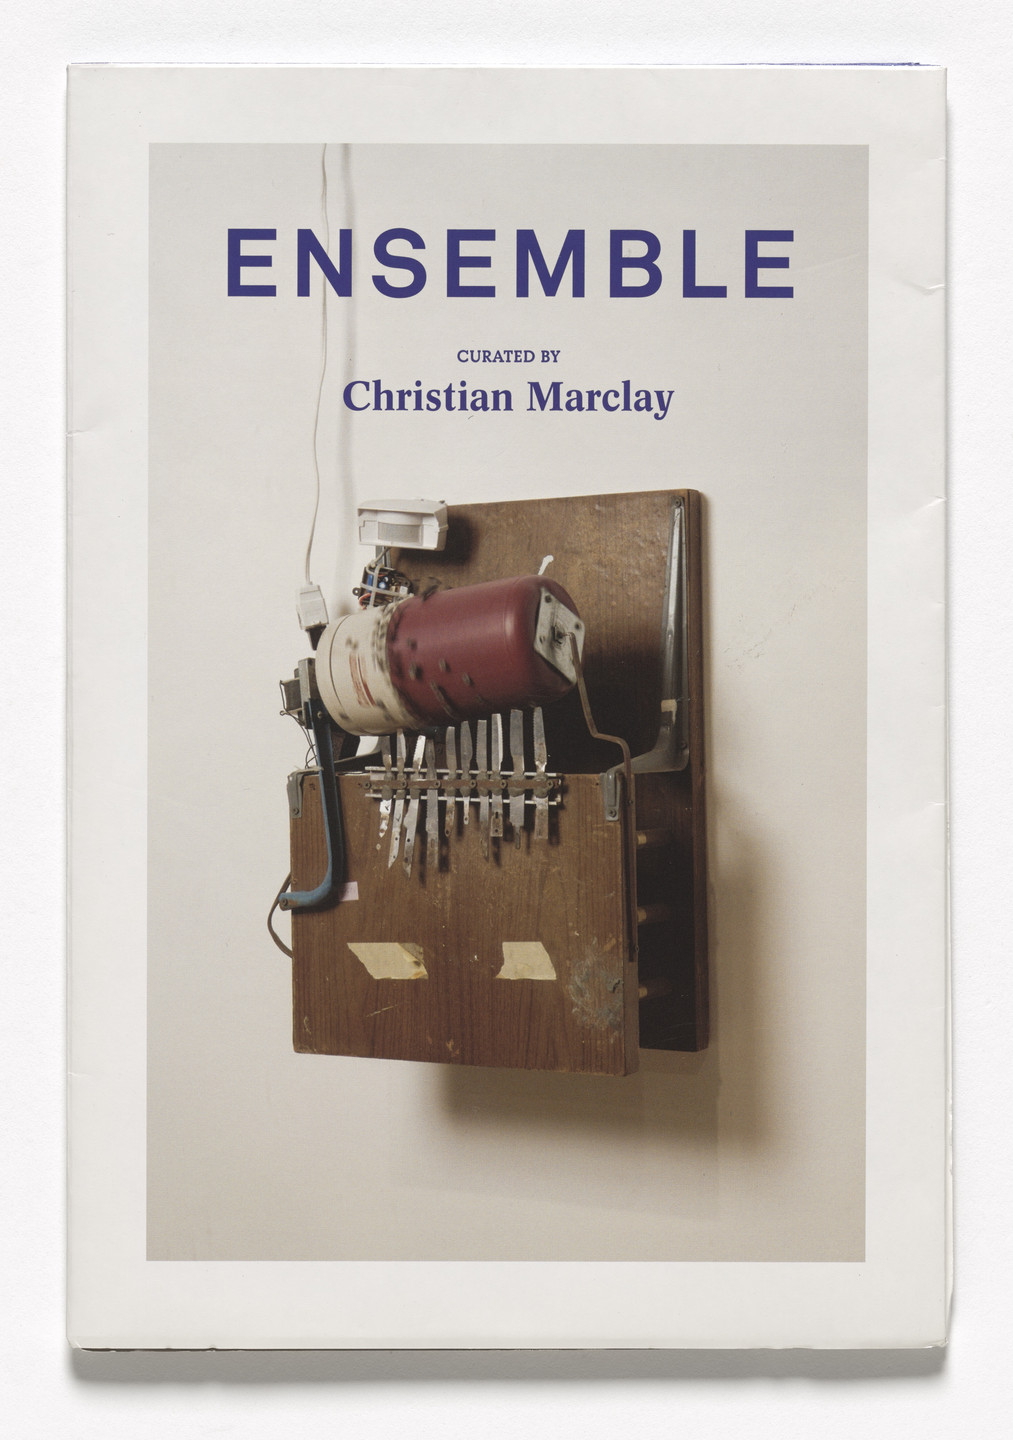 Various Artists. ENSEMBLE, Curated by Christian Marclay. 2008